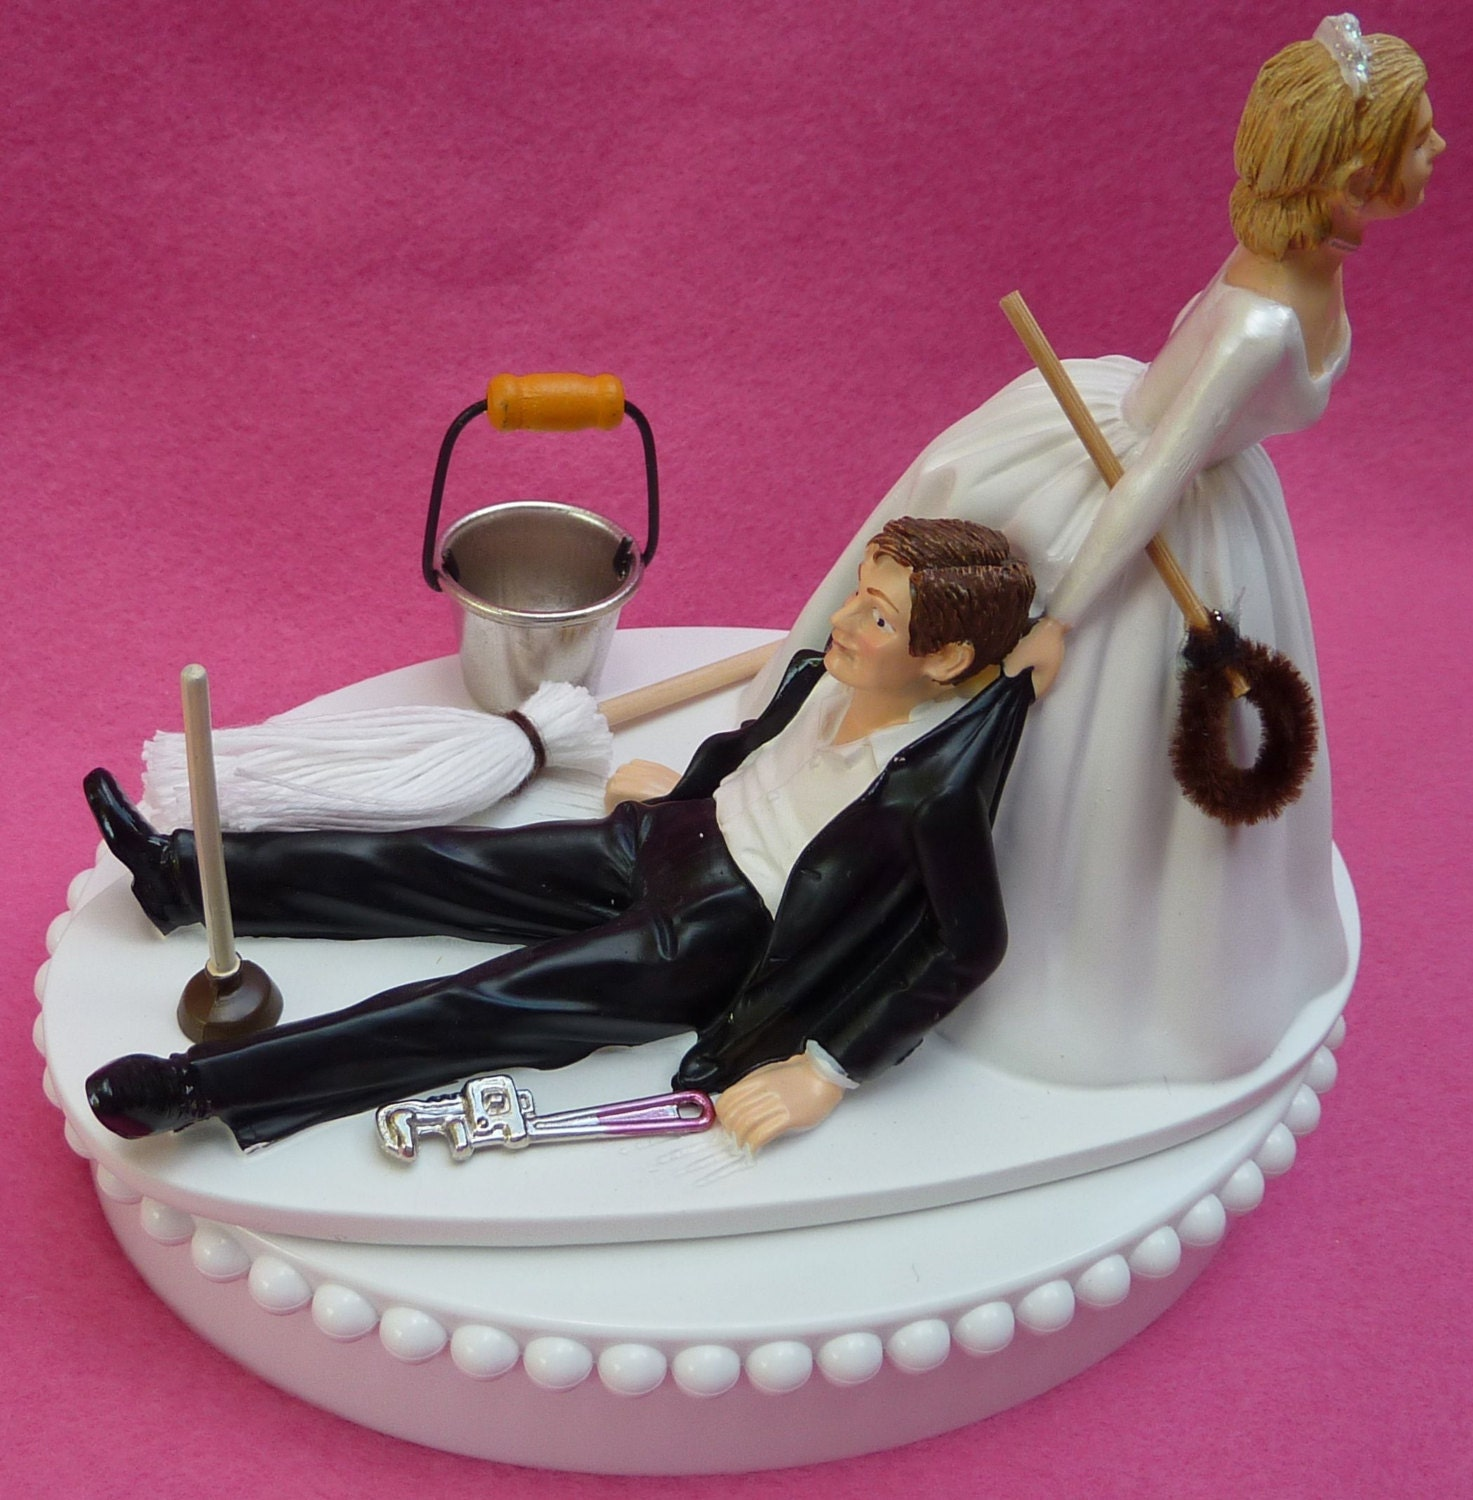 Wedding Cake Topper Janitor Themed w/ Bridal Garter Janitorial | Etsy